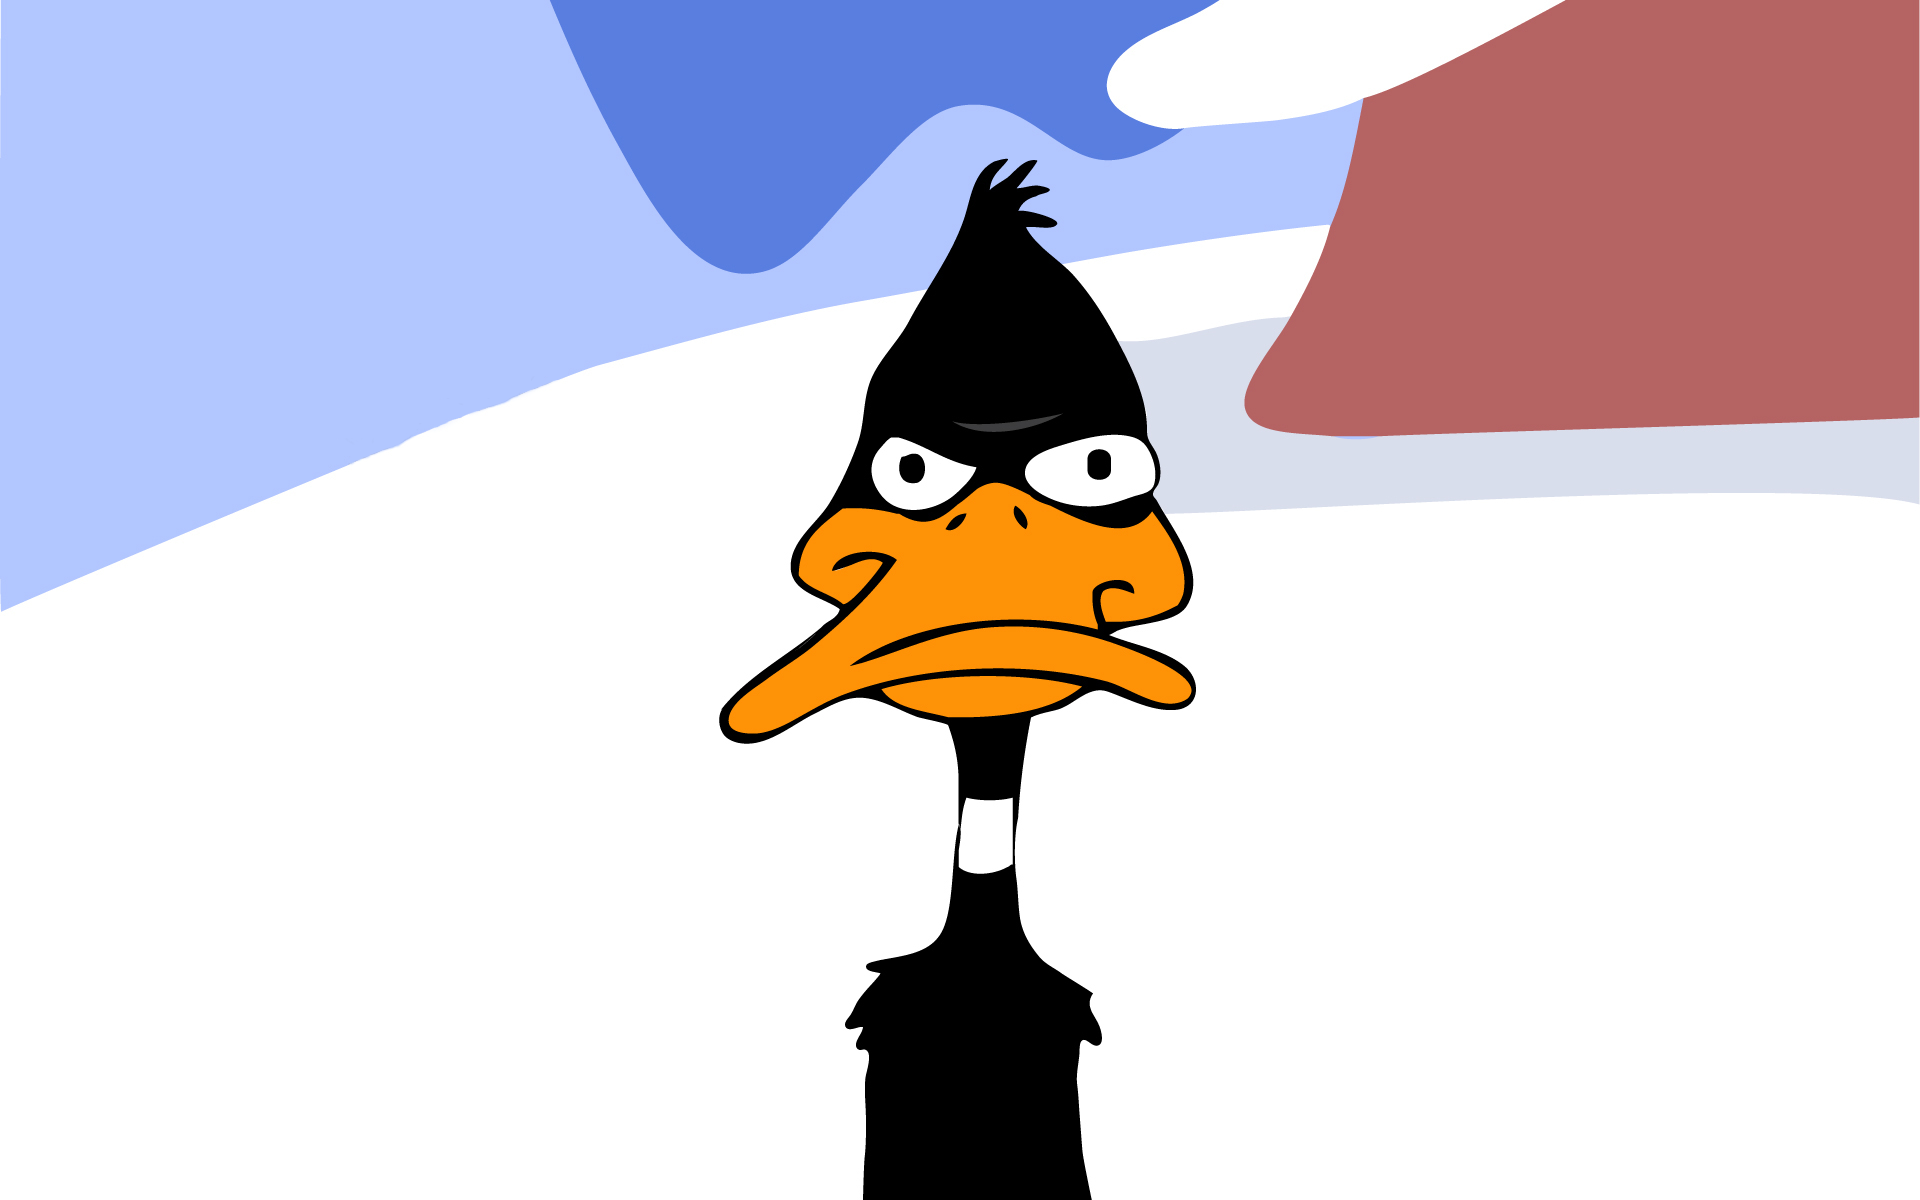 daffy duck background cartoon